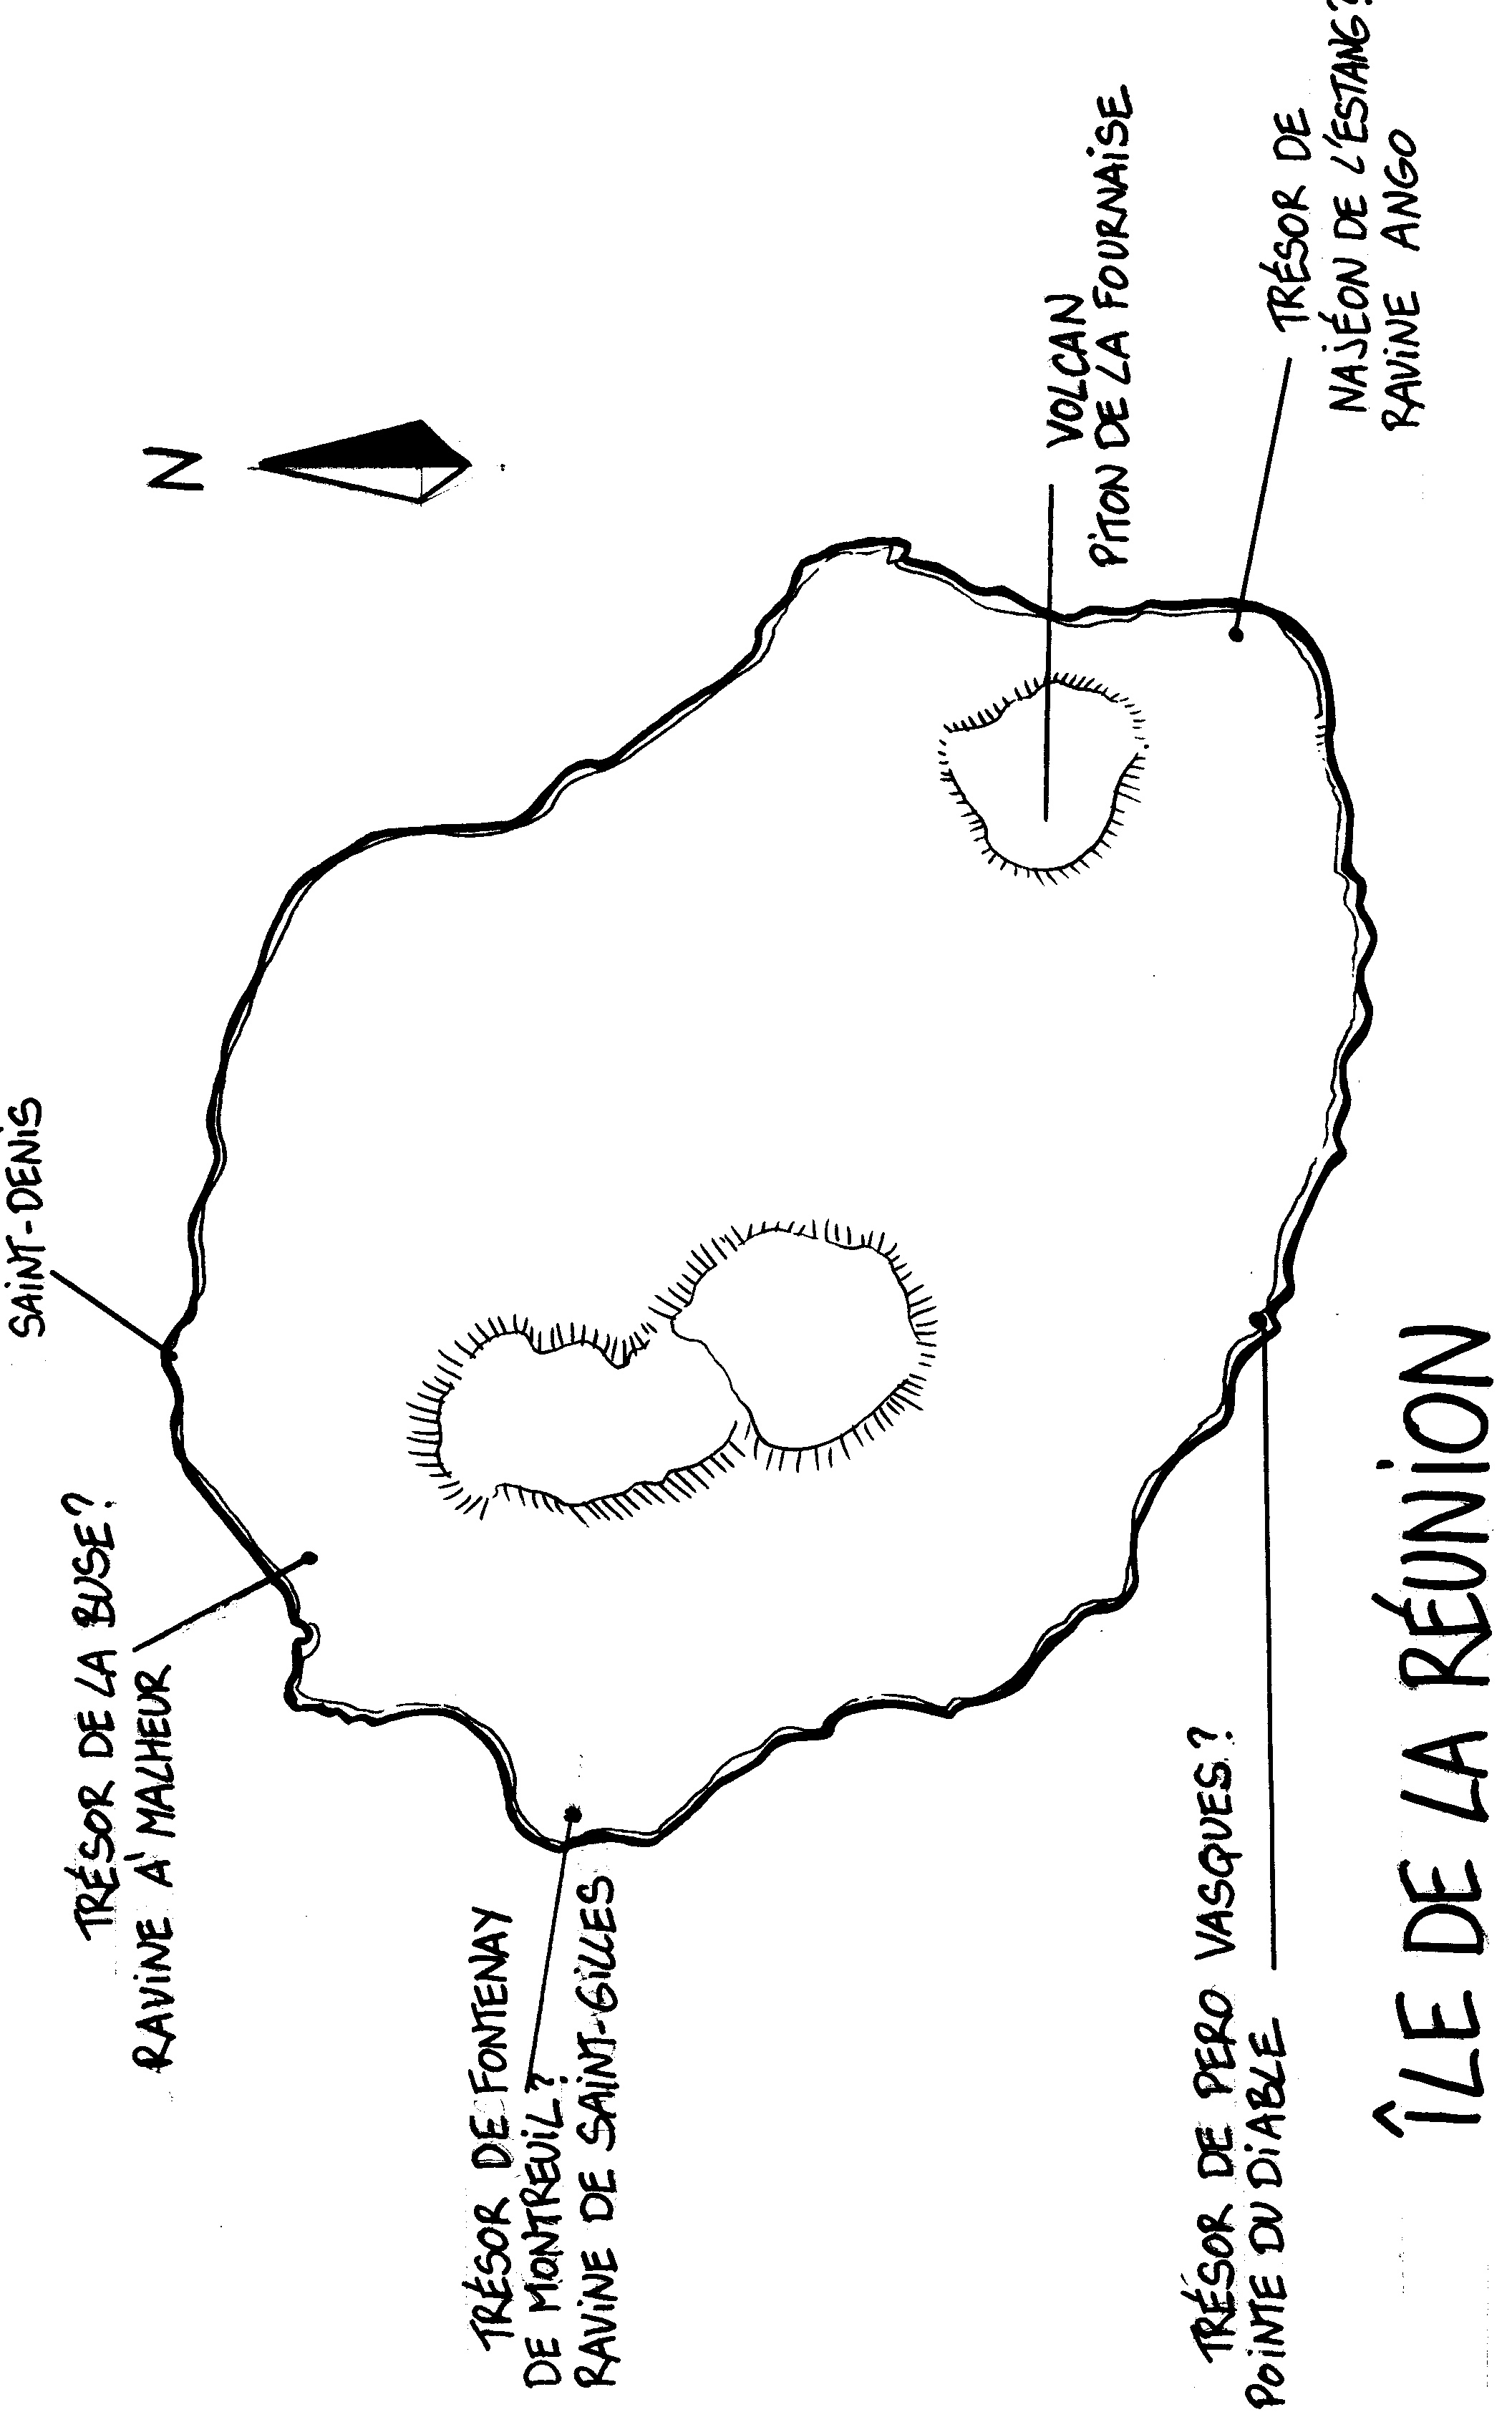 forêt loches plan